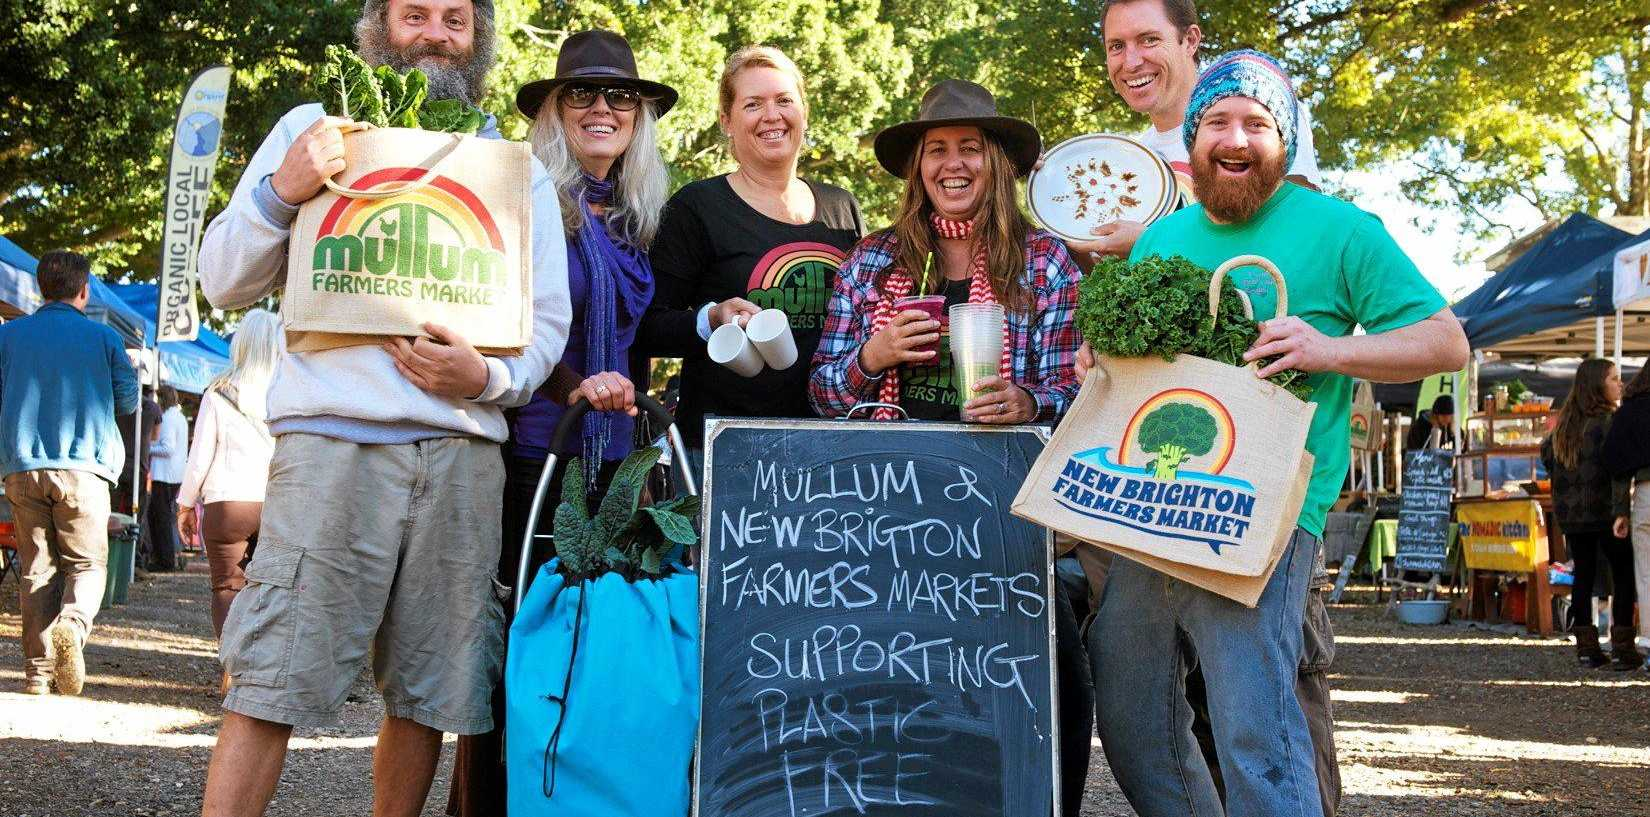 PLASTIC FREE: Mullumbimby and New Brighton Farmers Markets are embracing reusable bags, cups, plates and containers as part of Plastic Free July.